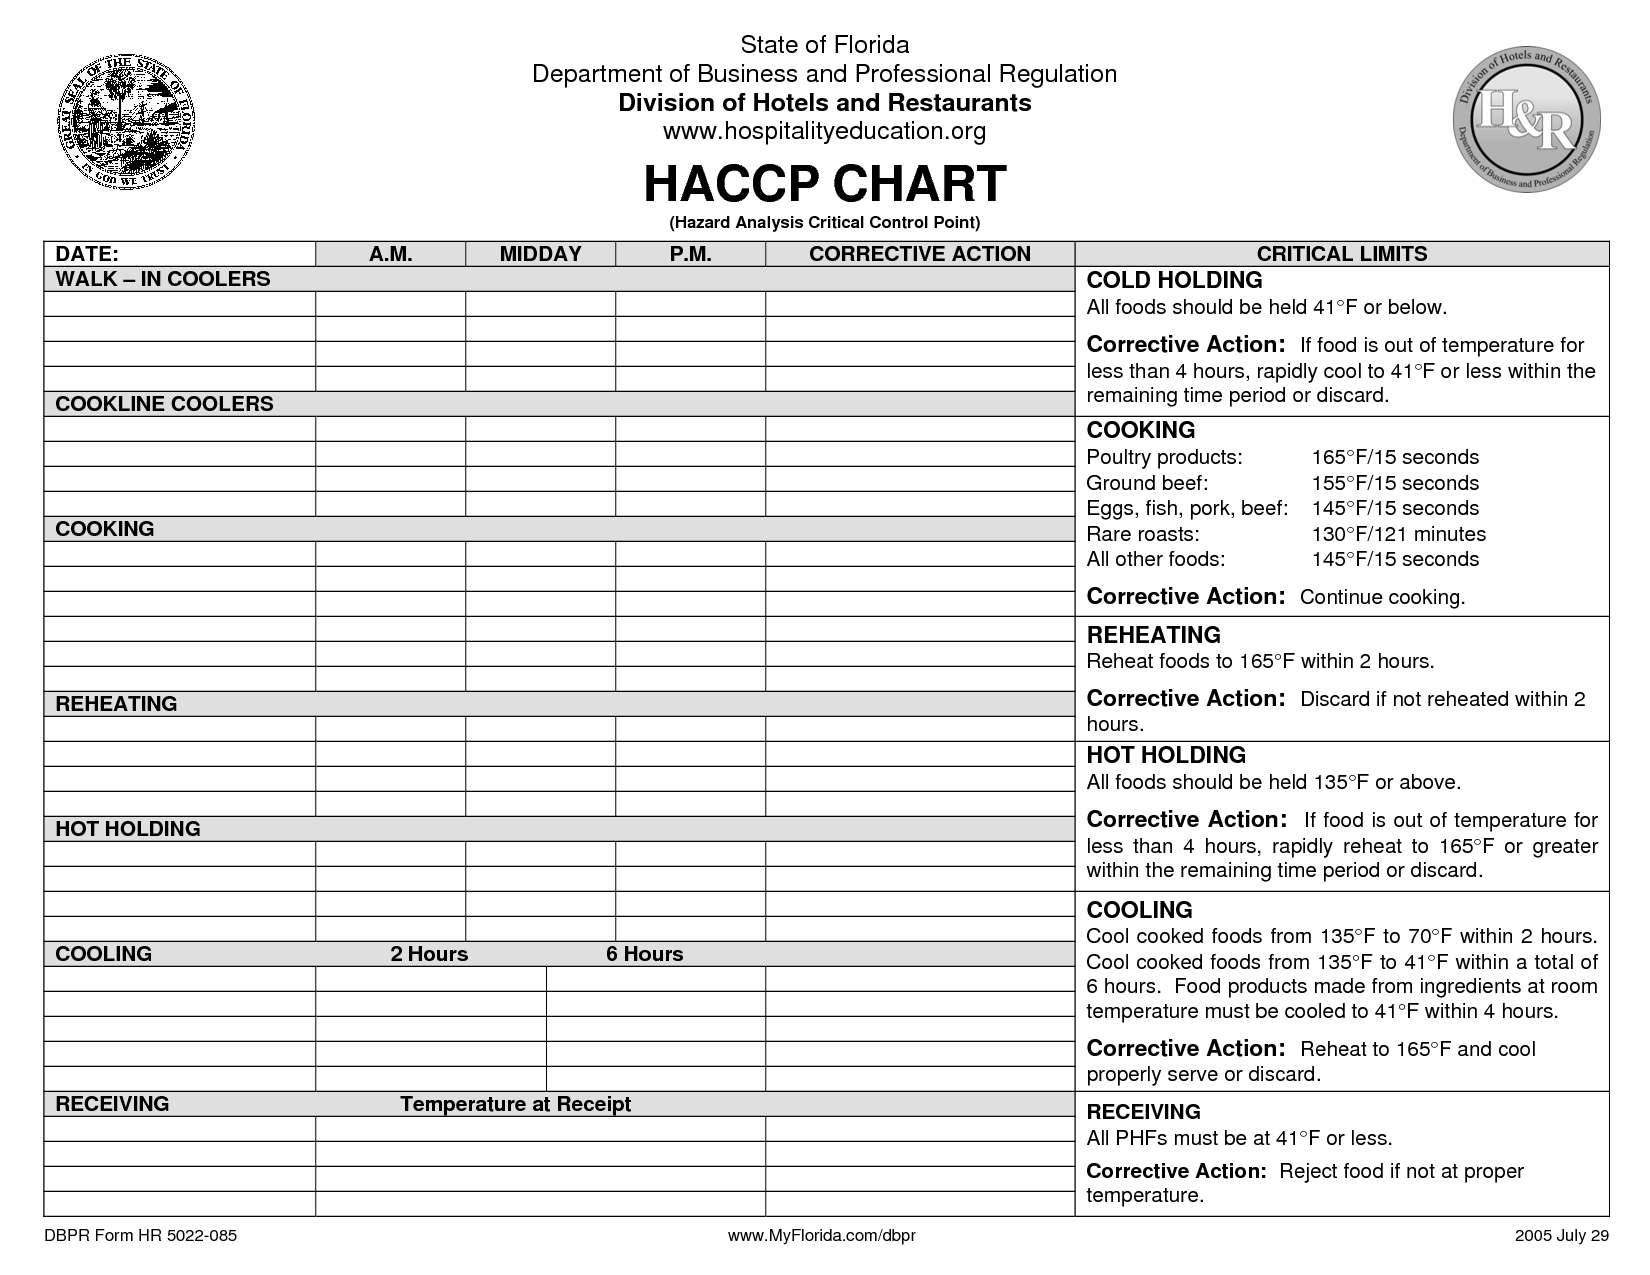 1000+ images about HACCP on Pinterest | Training, Image search and ...